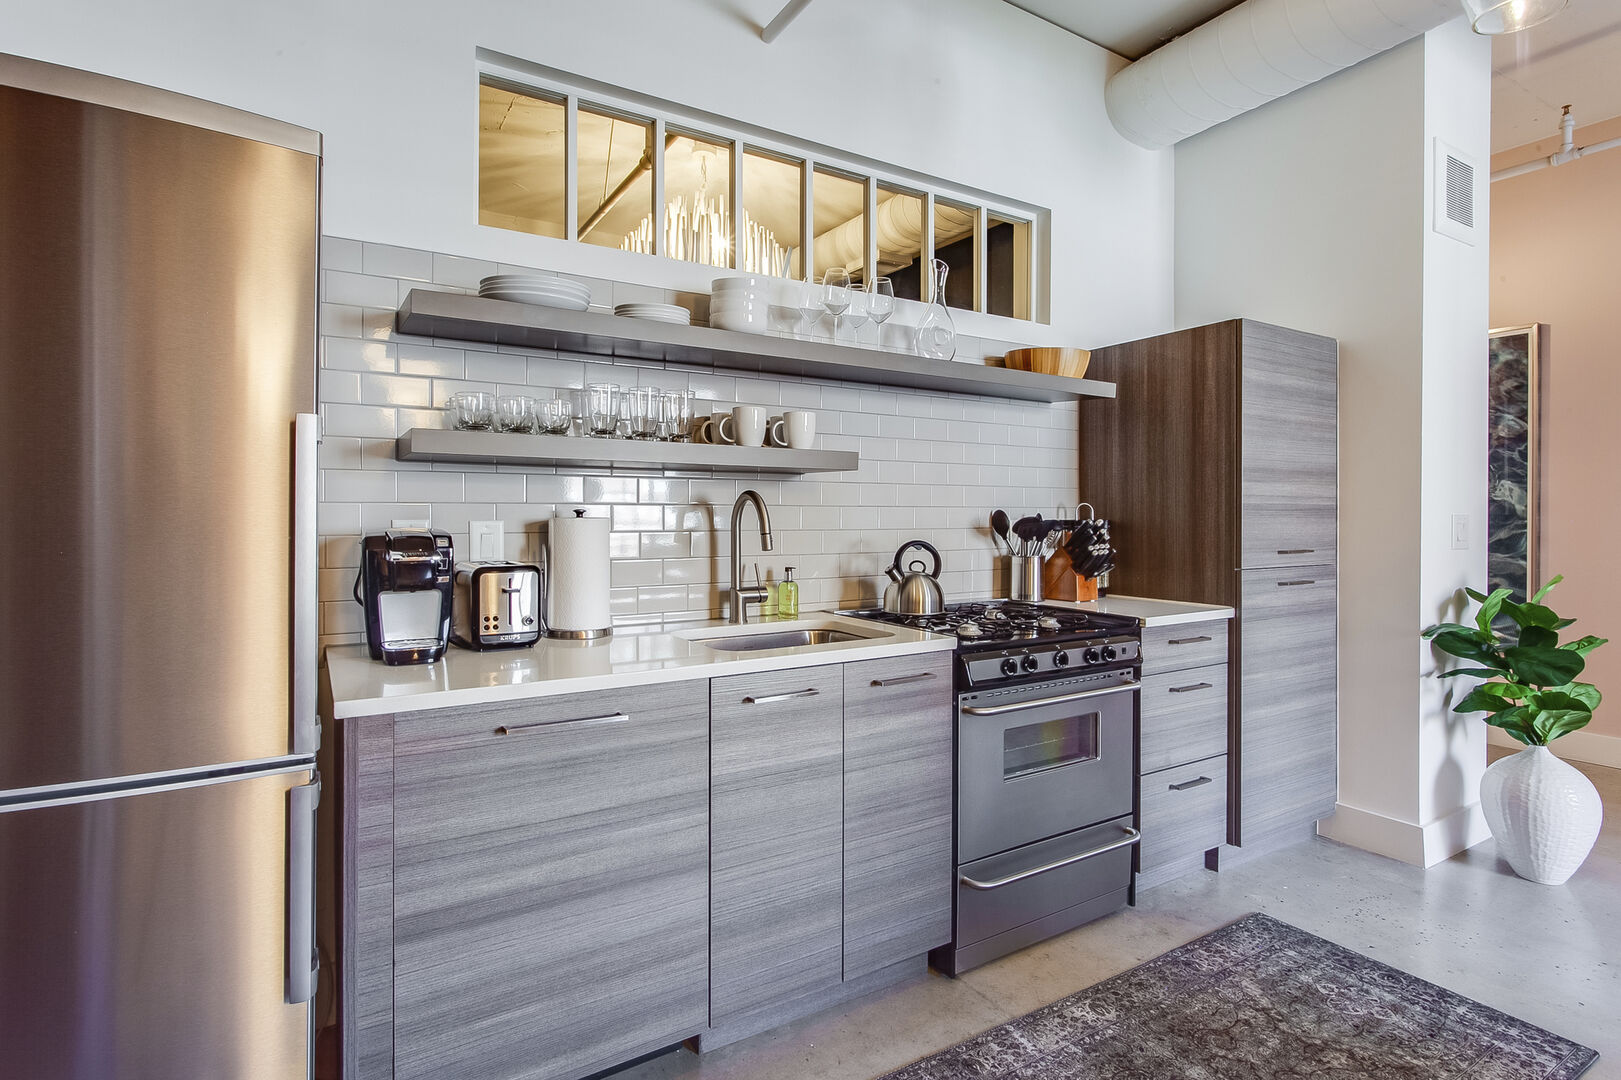 Modern Kitchen Includes Stainless Steel Appliances.